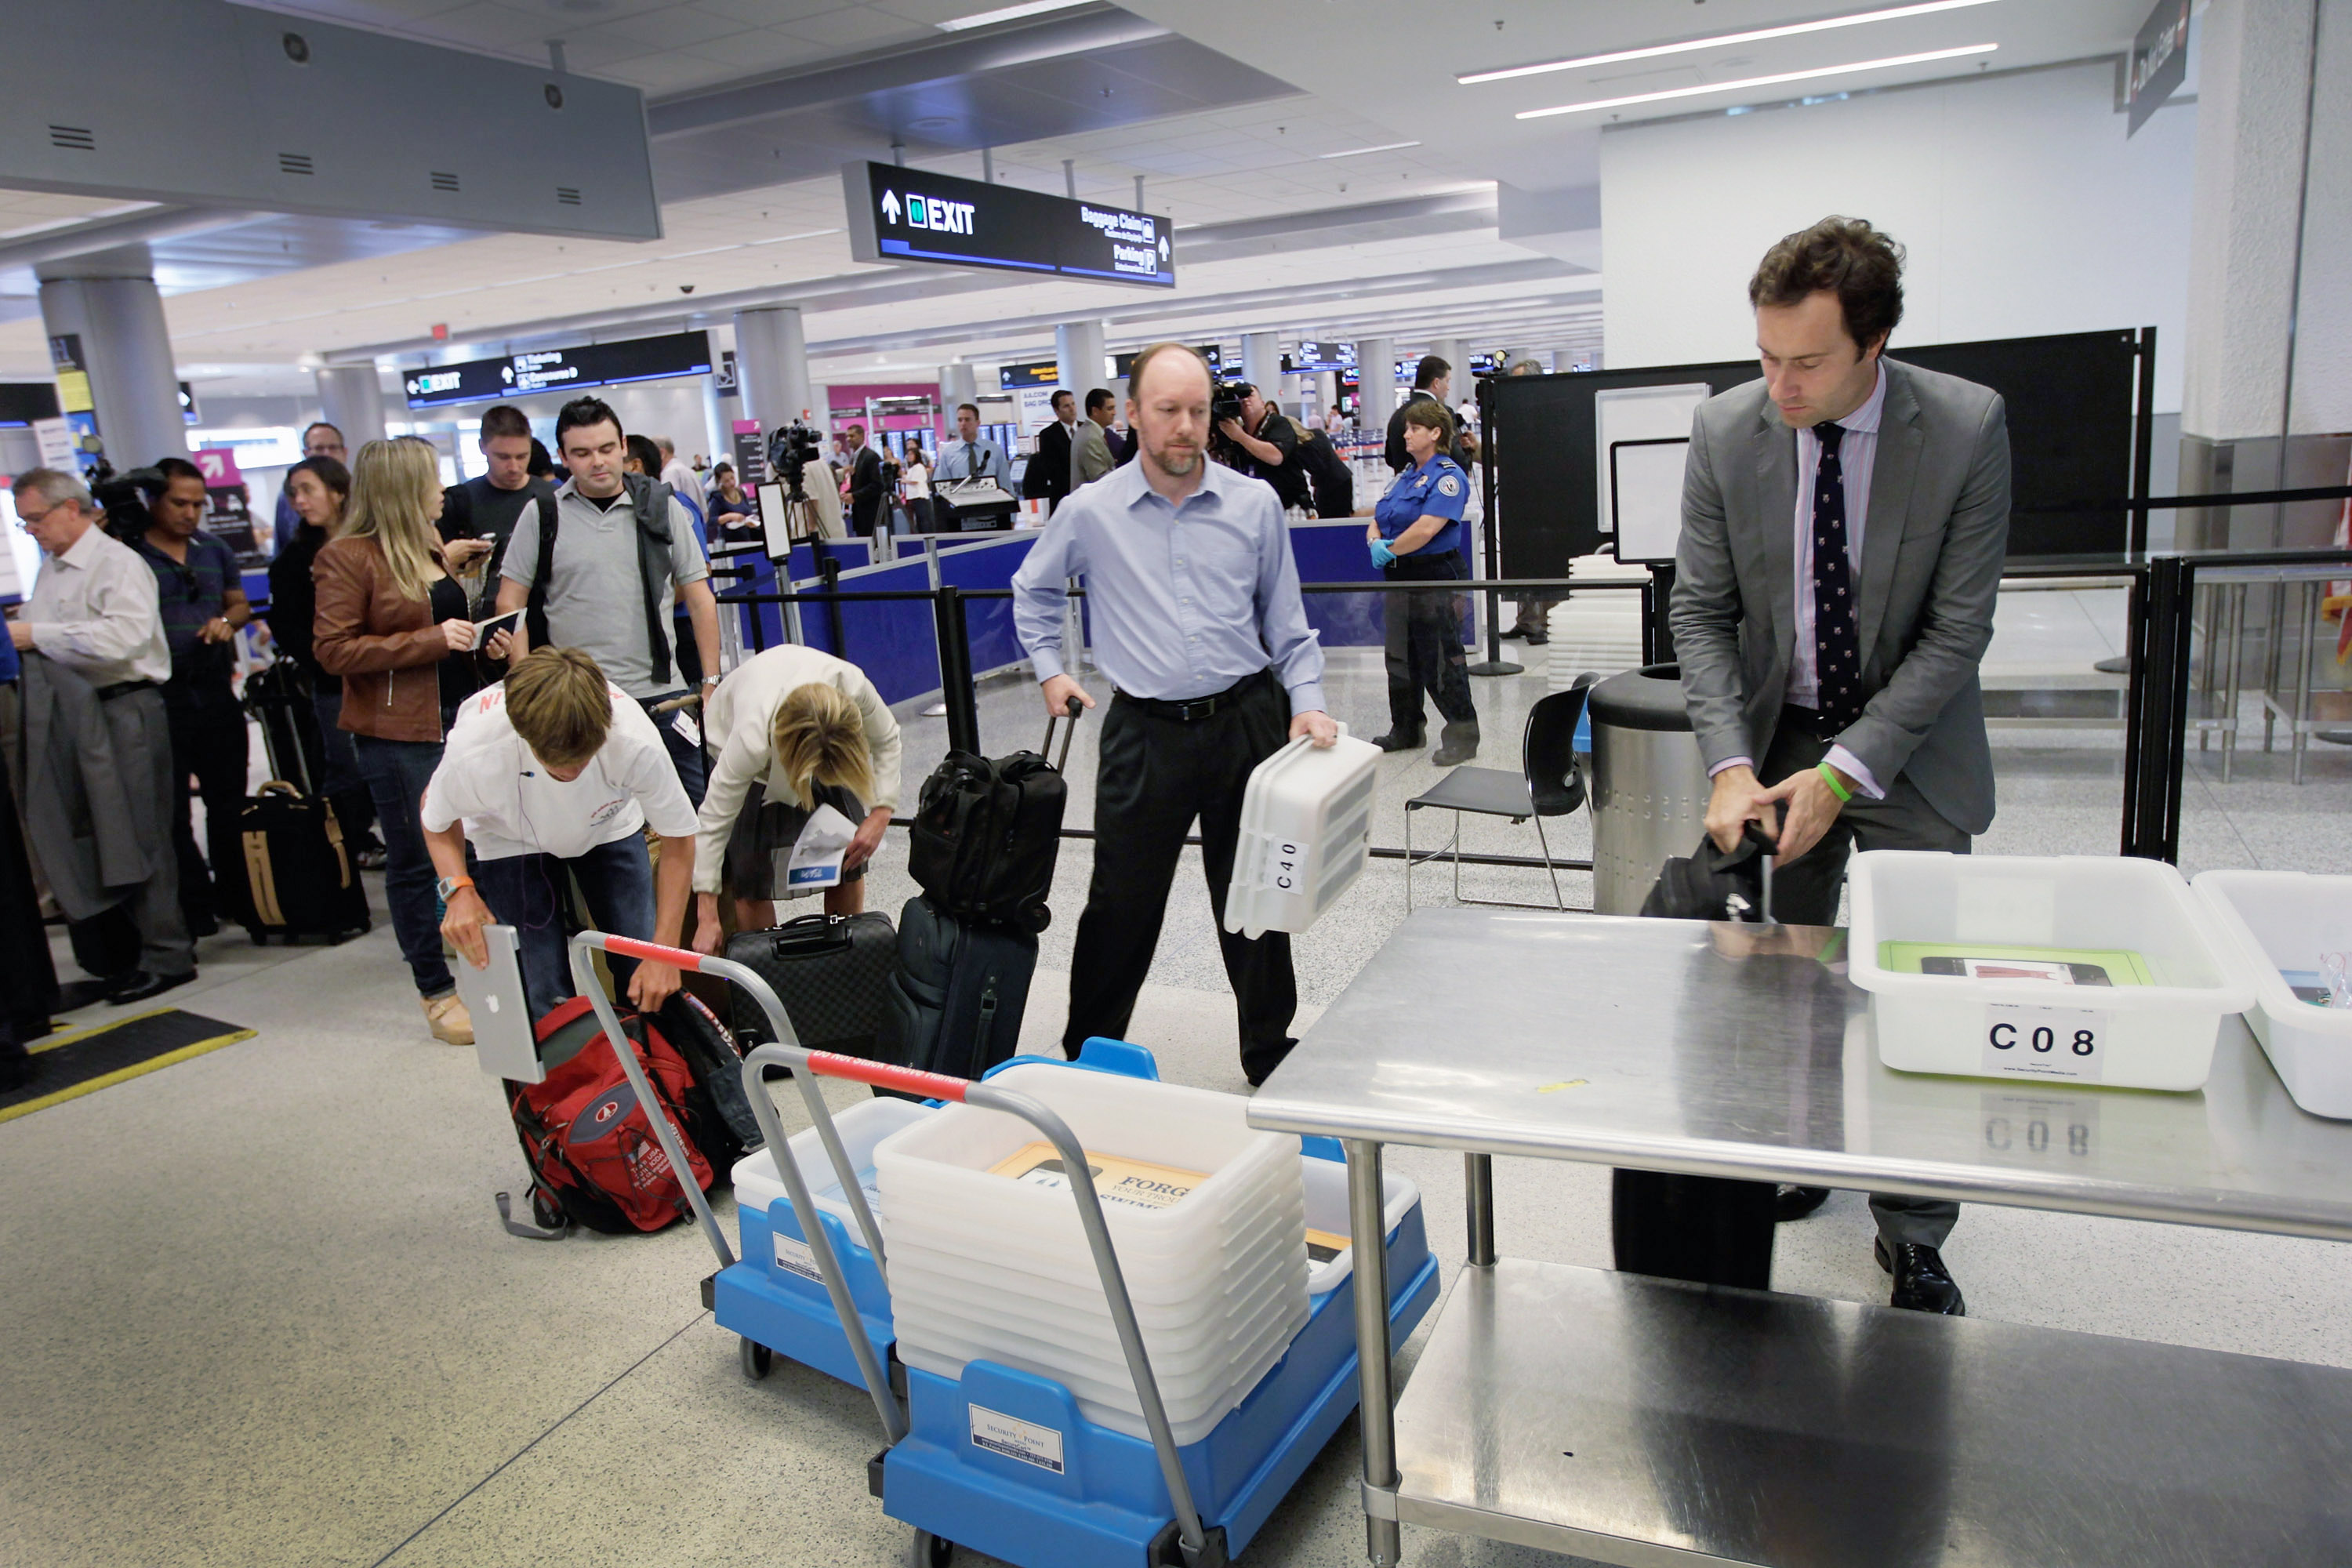 Passengers wait to clear security next to the newly opened TSA PreCheck lane which the Transportation Security Administration launched to cut down the time prescreened passengers need to stand in the traditional security line at Miami International Airport on October 4, 2011 in Miami, Florida. (Photo by Joe Raedle/Getty Images)